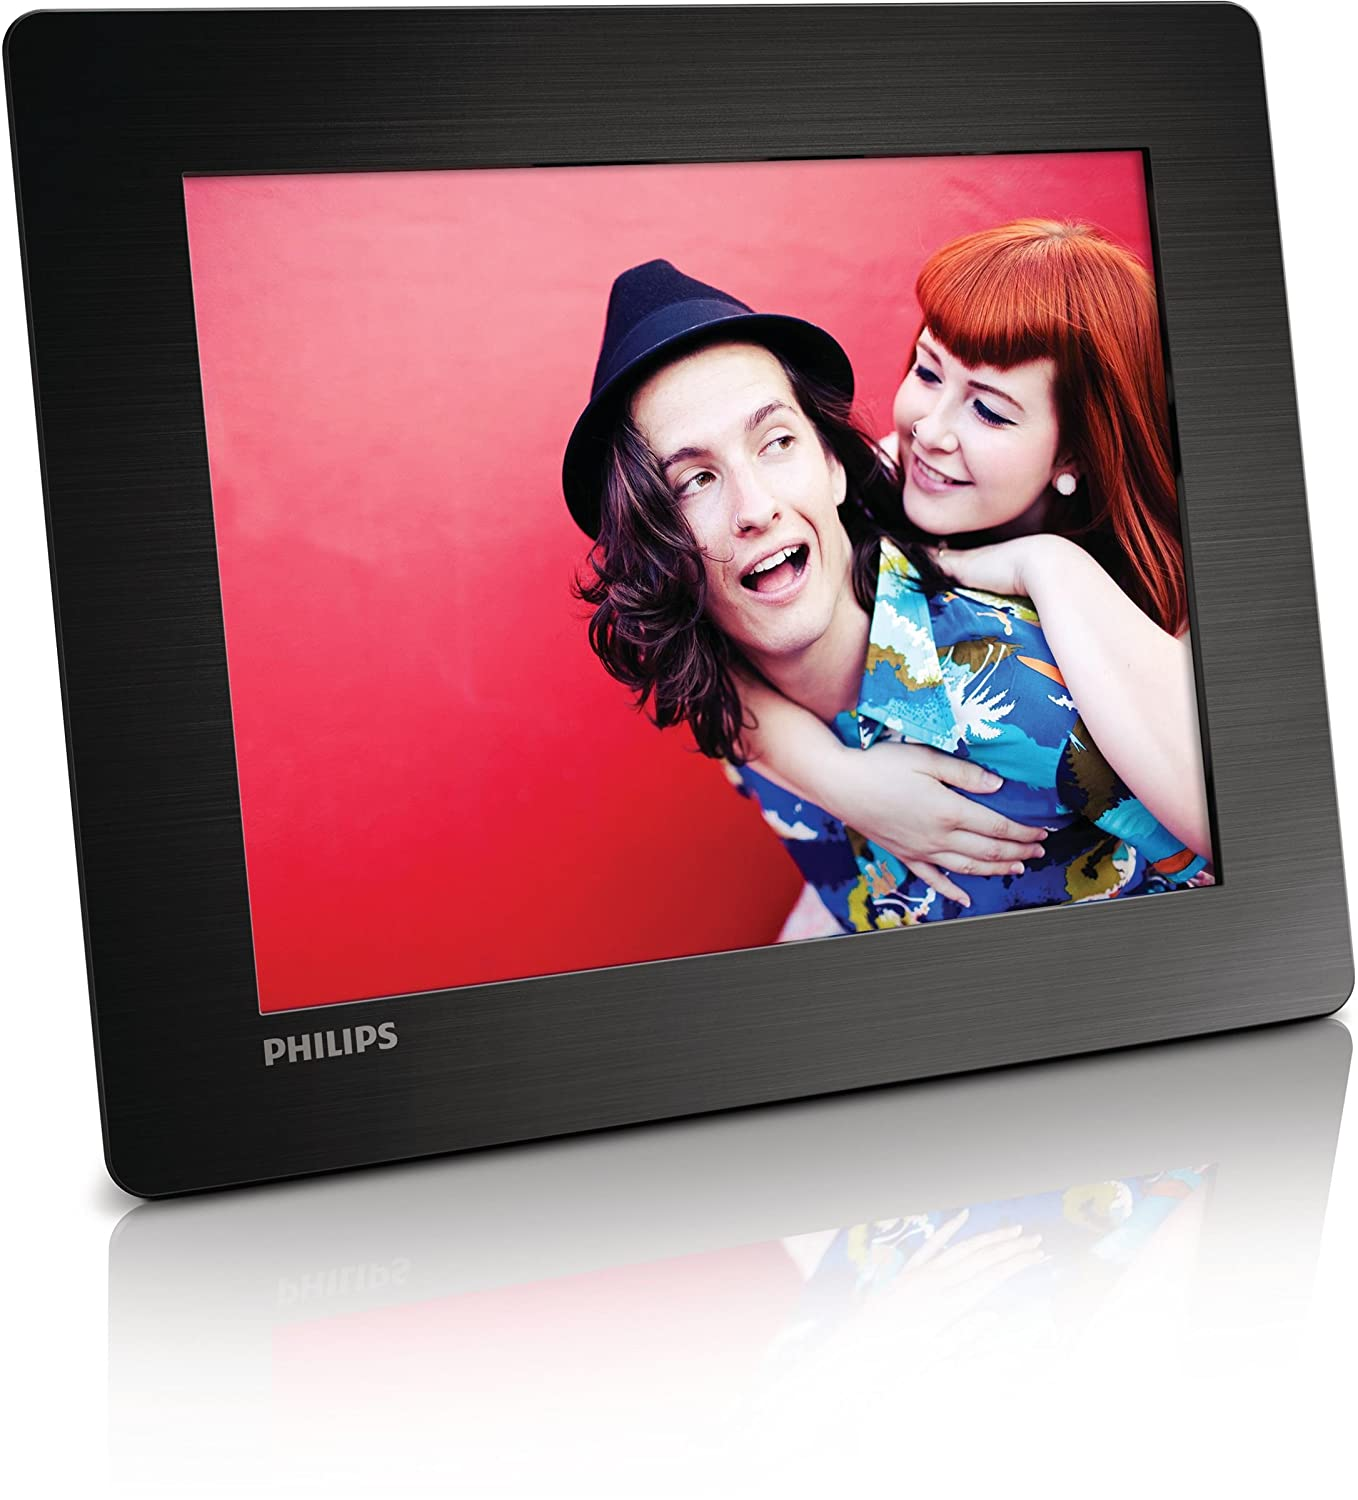 Philips Digital Photo Frame Mac Software | Frameswall.co